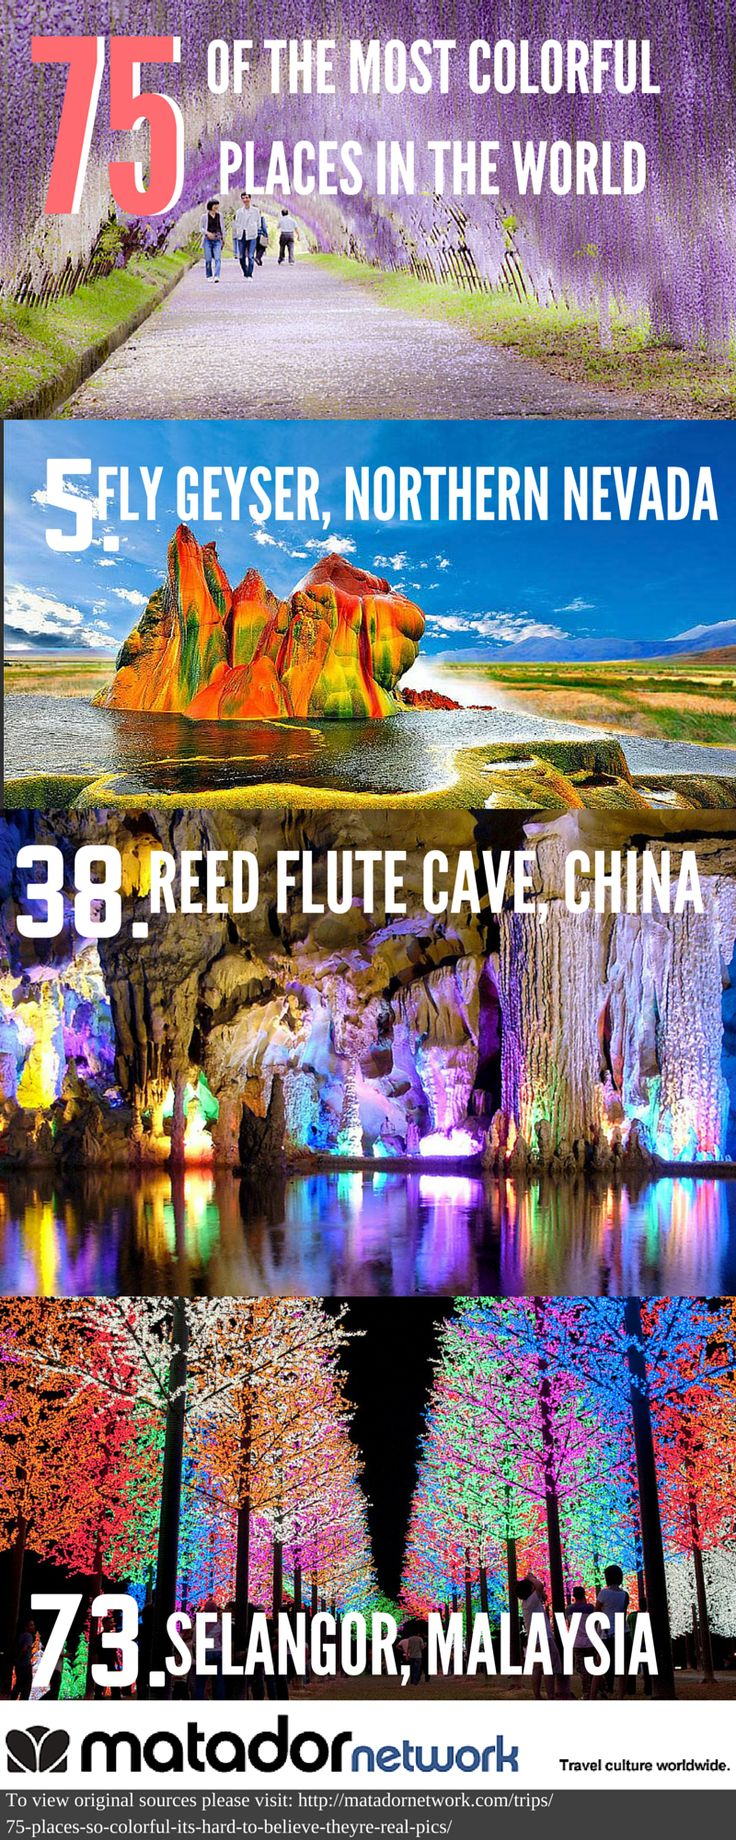 Check out 75 of the most colorful places in the world that include Fly Geyser, Northern Nevada, Reed Flute Cave in China and Selangor, Malaysia. Discover your next travel destination with MatadorNetwork.com